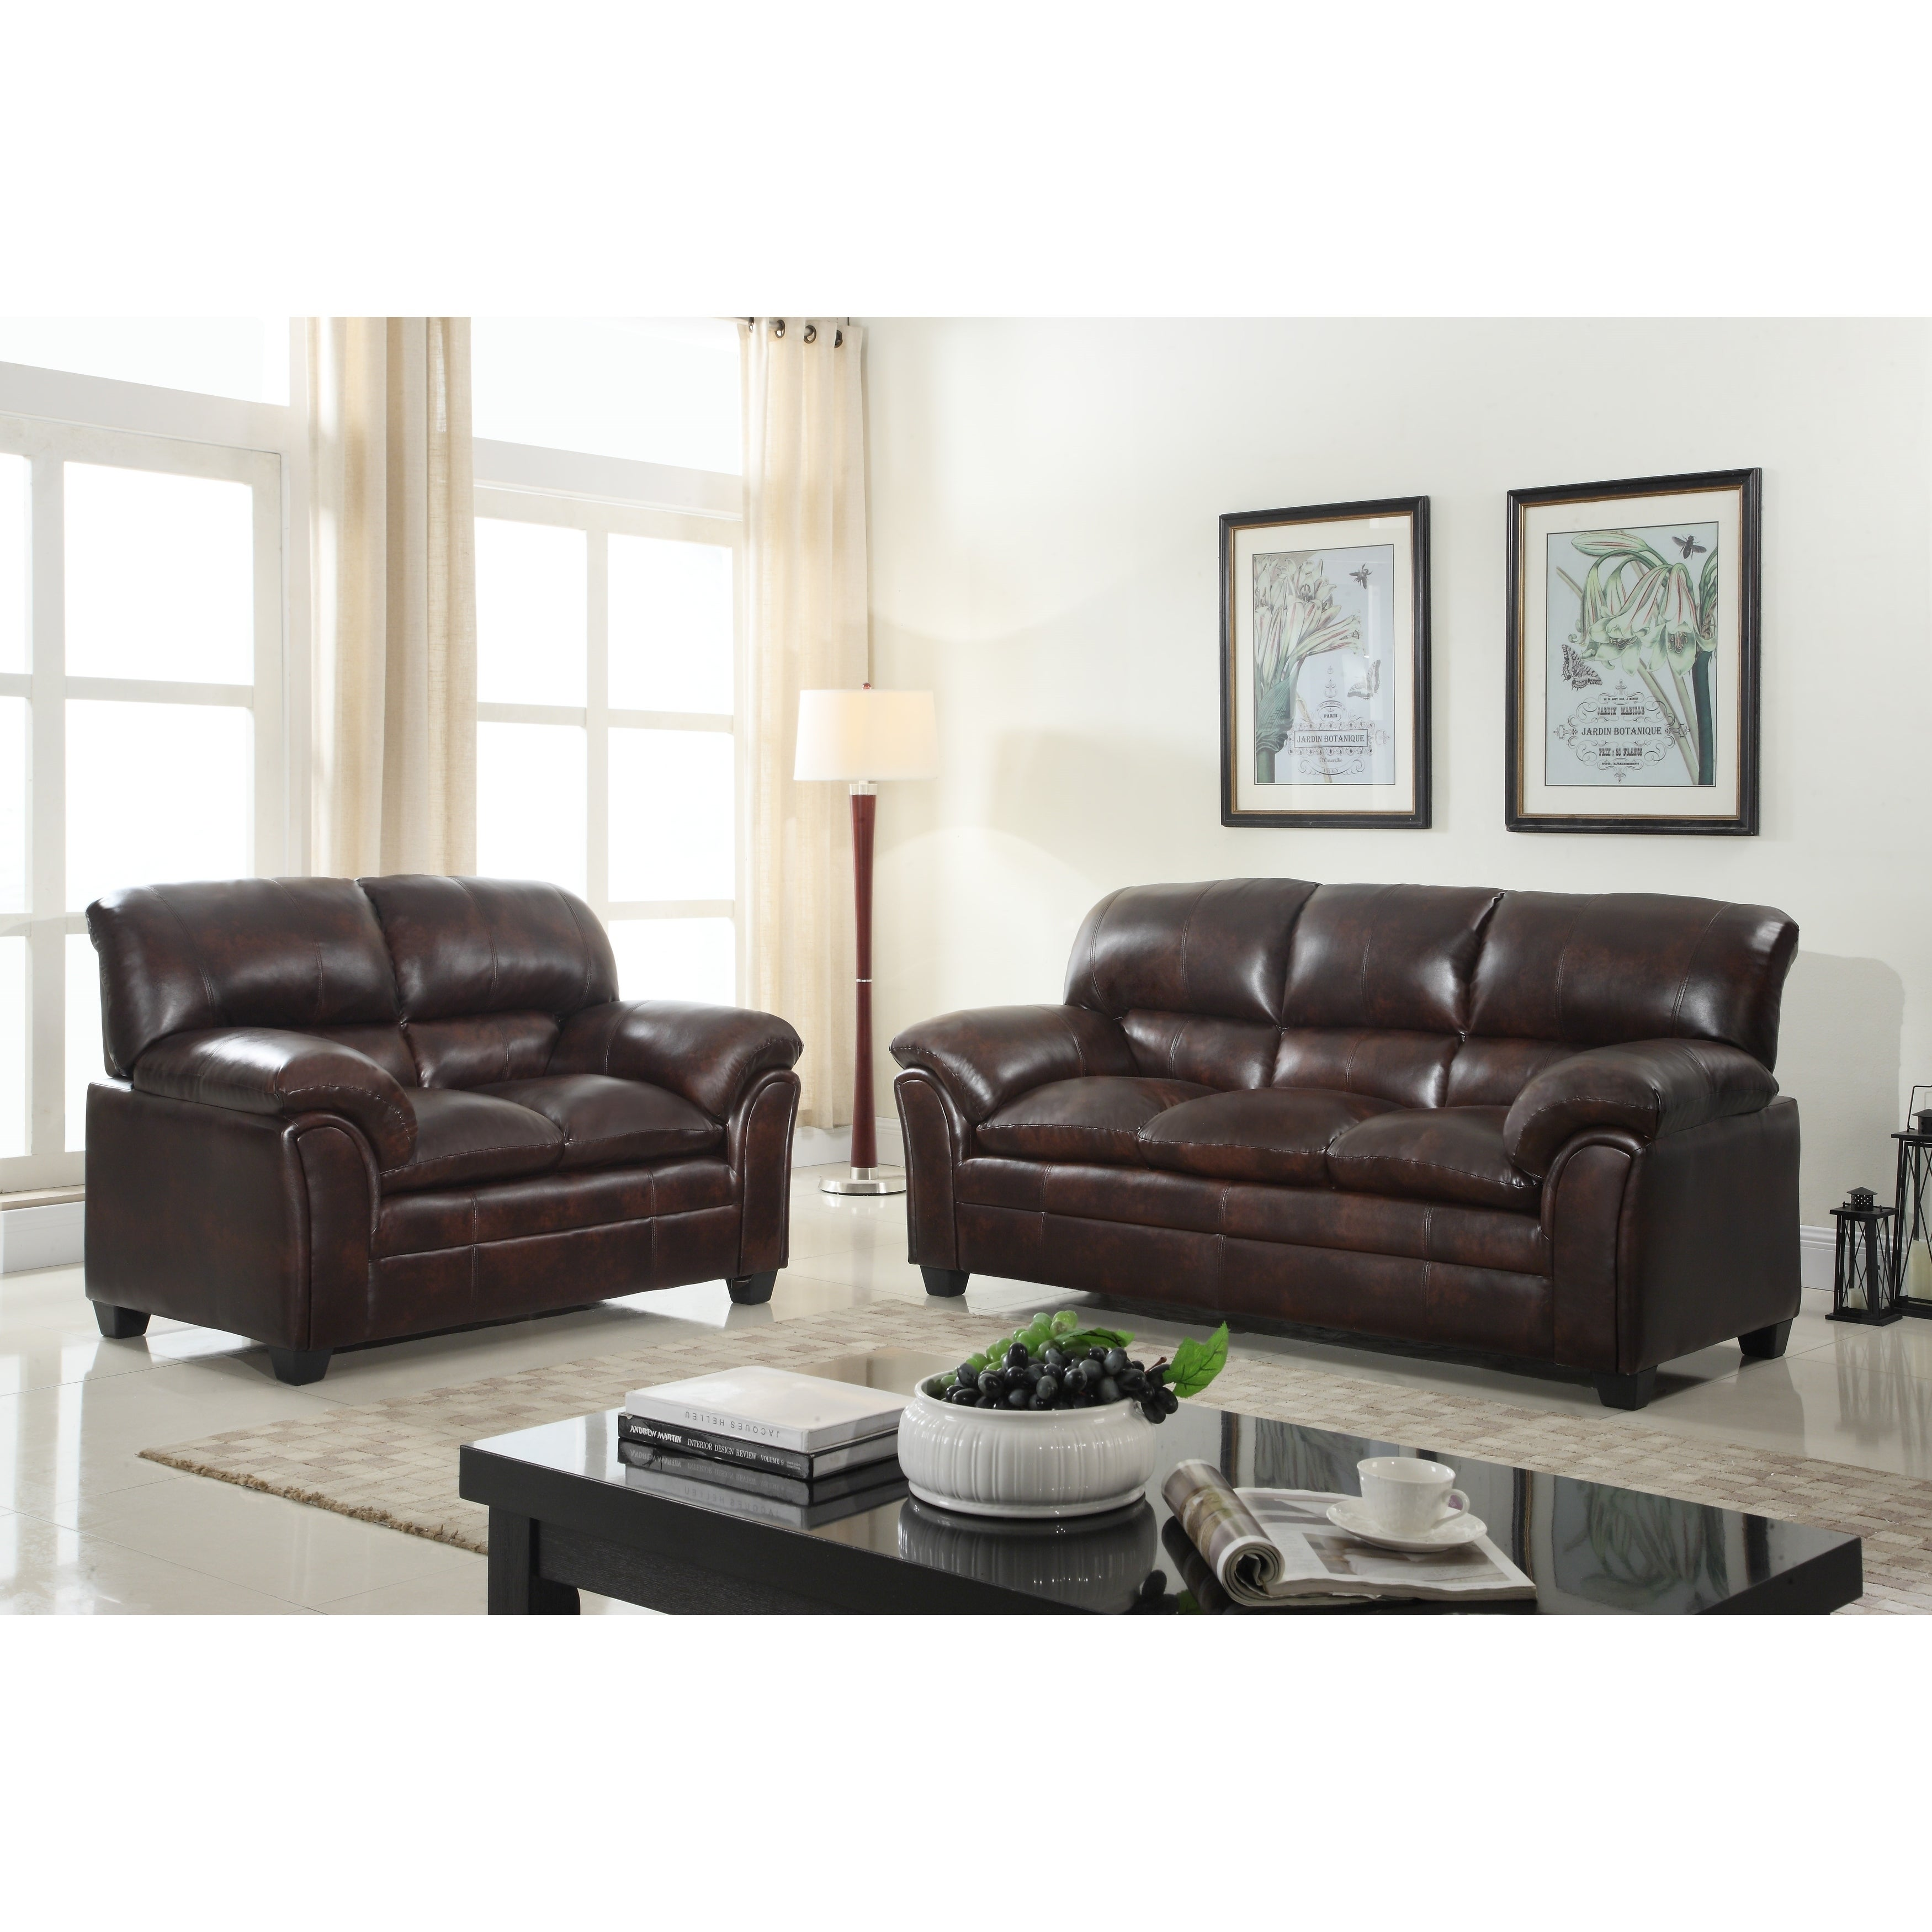 Gtu Furniture Sophisticated Luxurious Faux Leather Rich